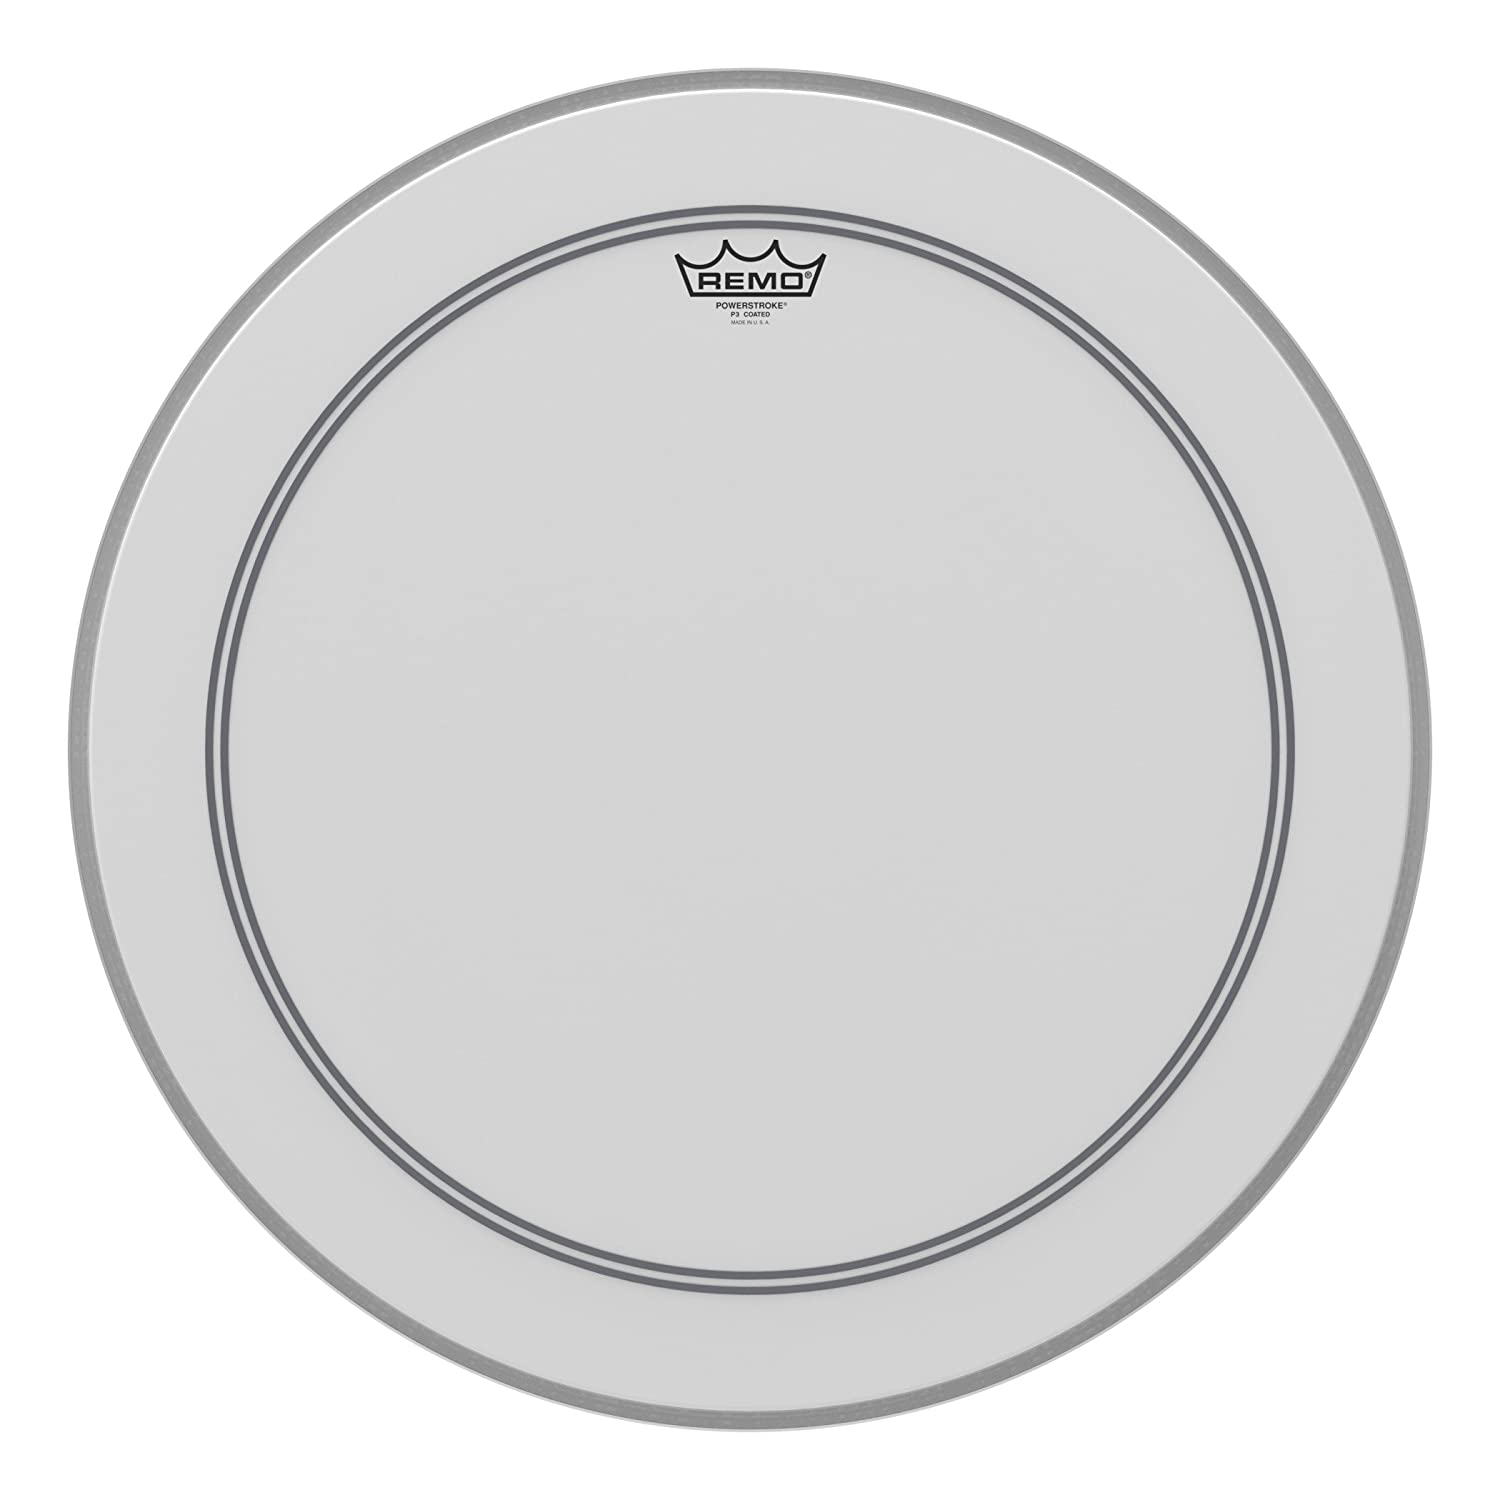 Remo P30112-BP Coated Powerstroke 3 Drum Head (12-Inch) Remo Inc.